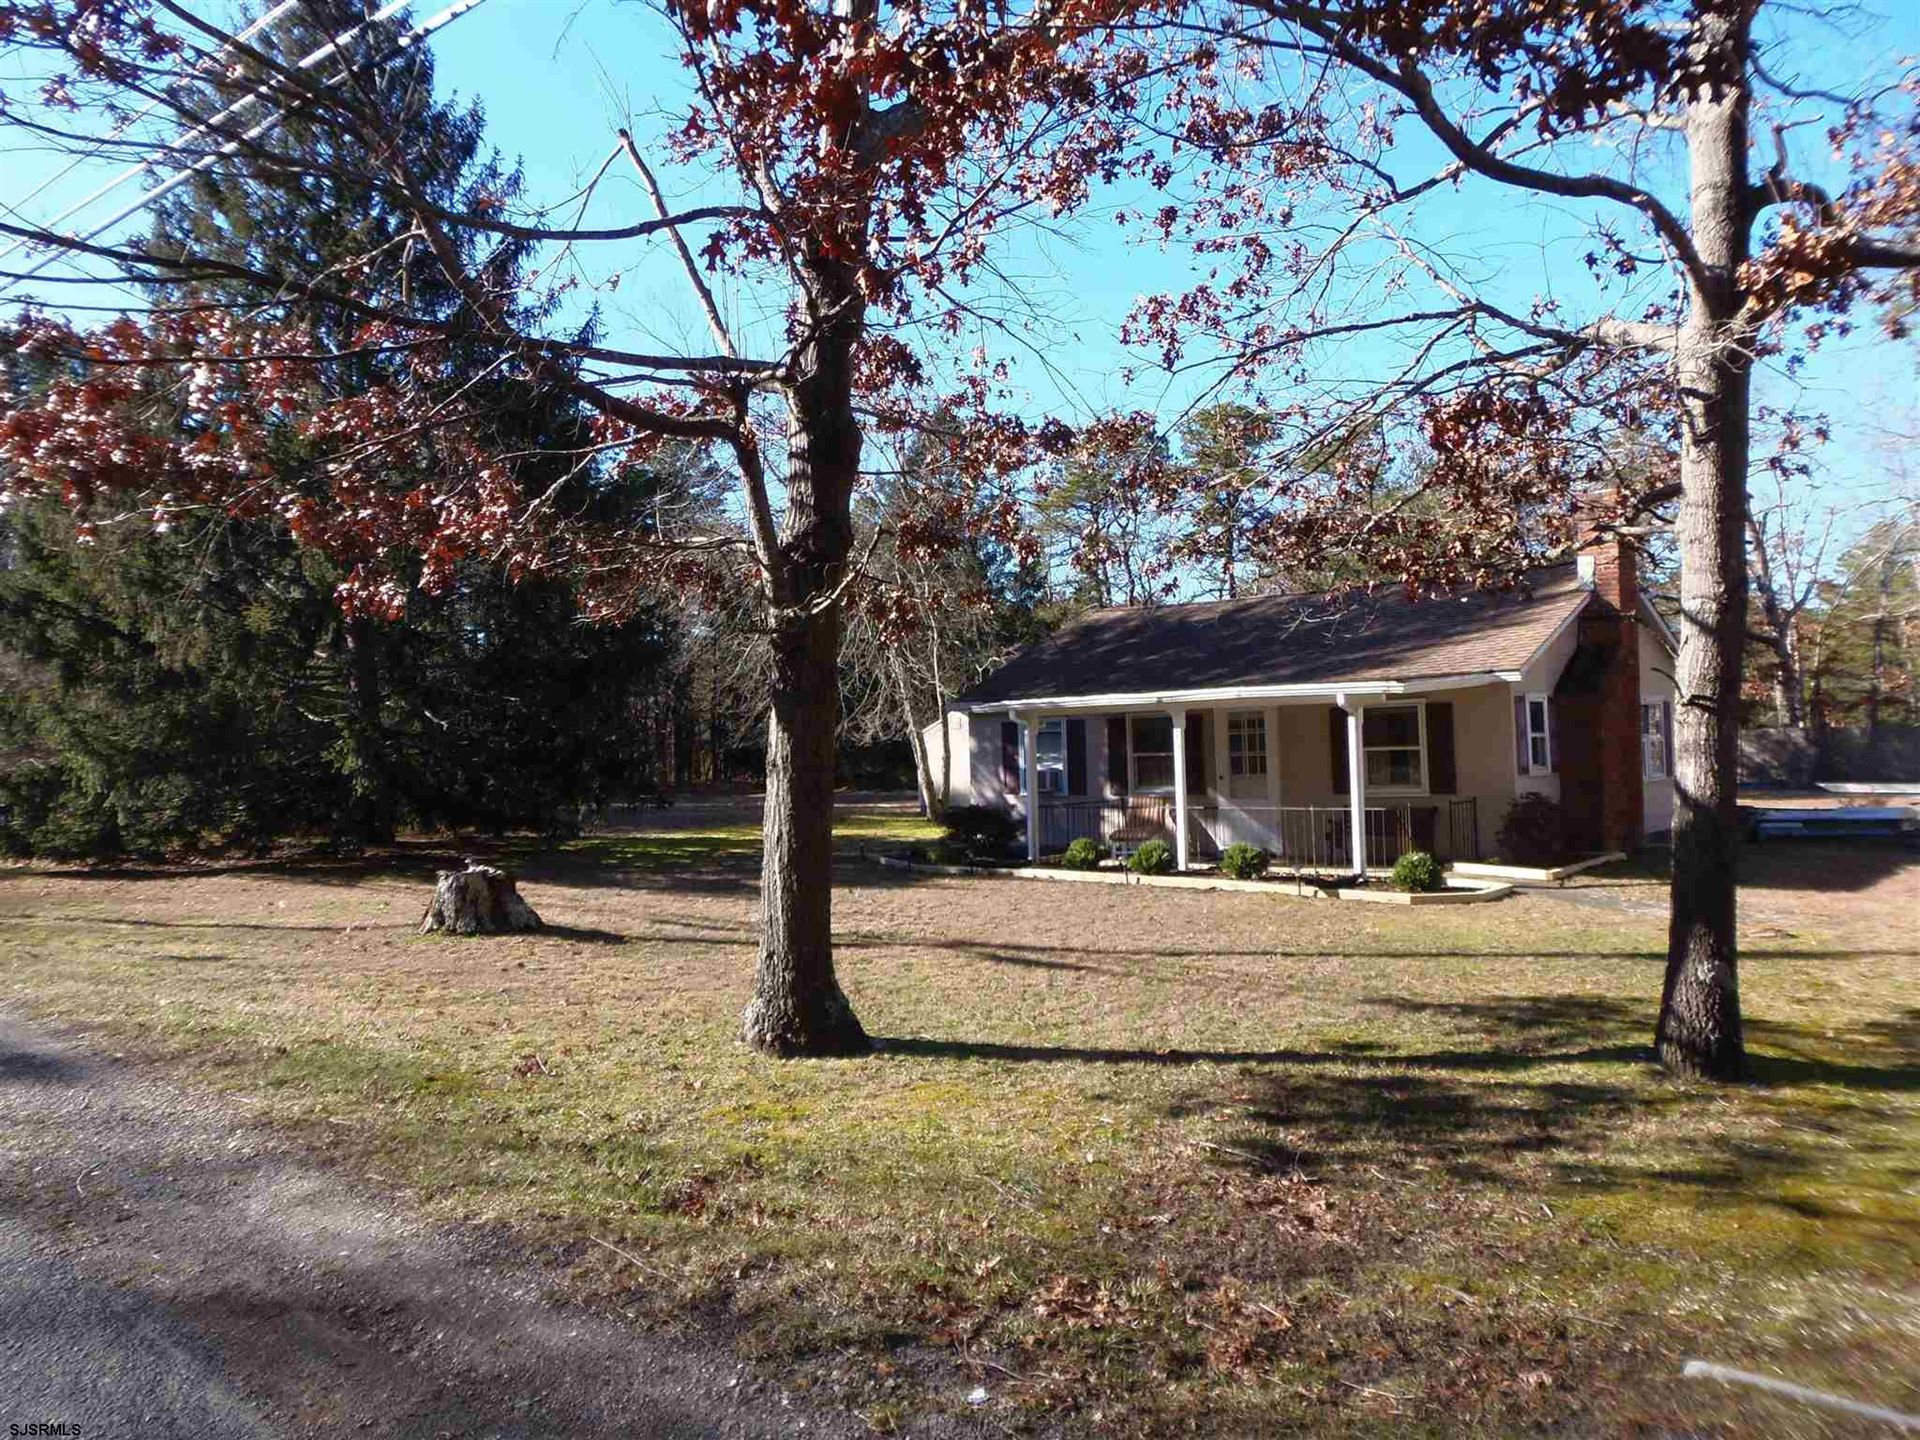 615 2nd Ave, Galloway, NJ 08205 - #: 545967